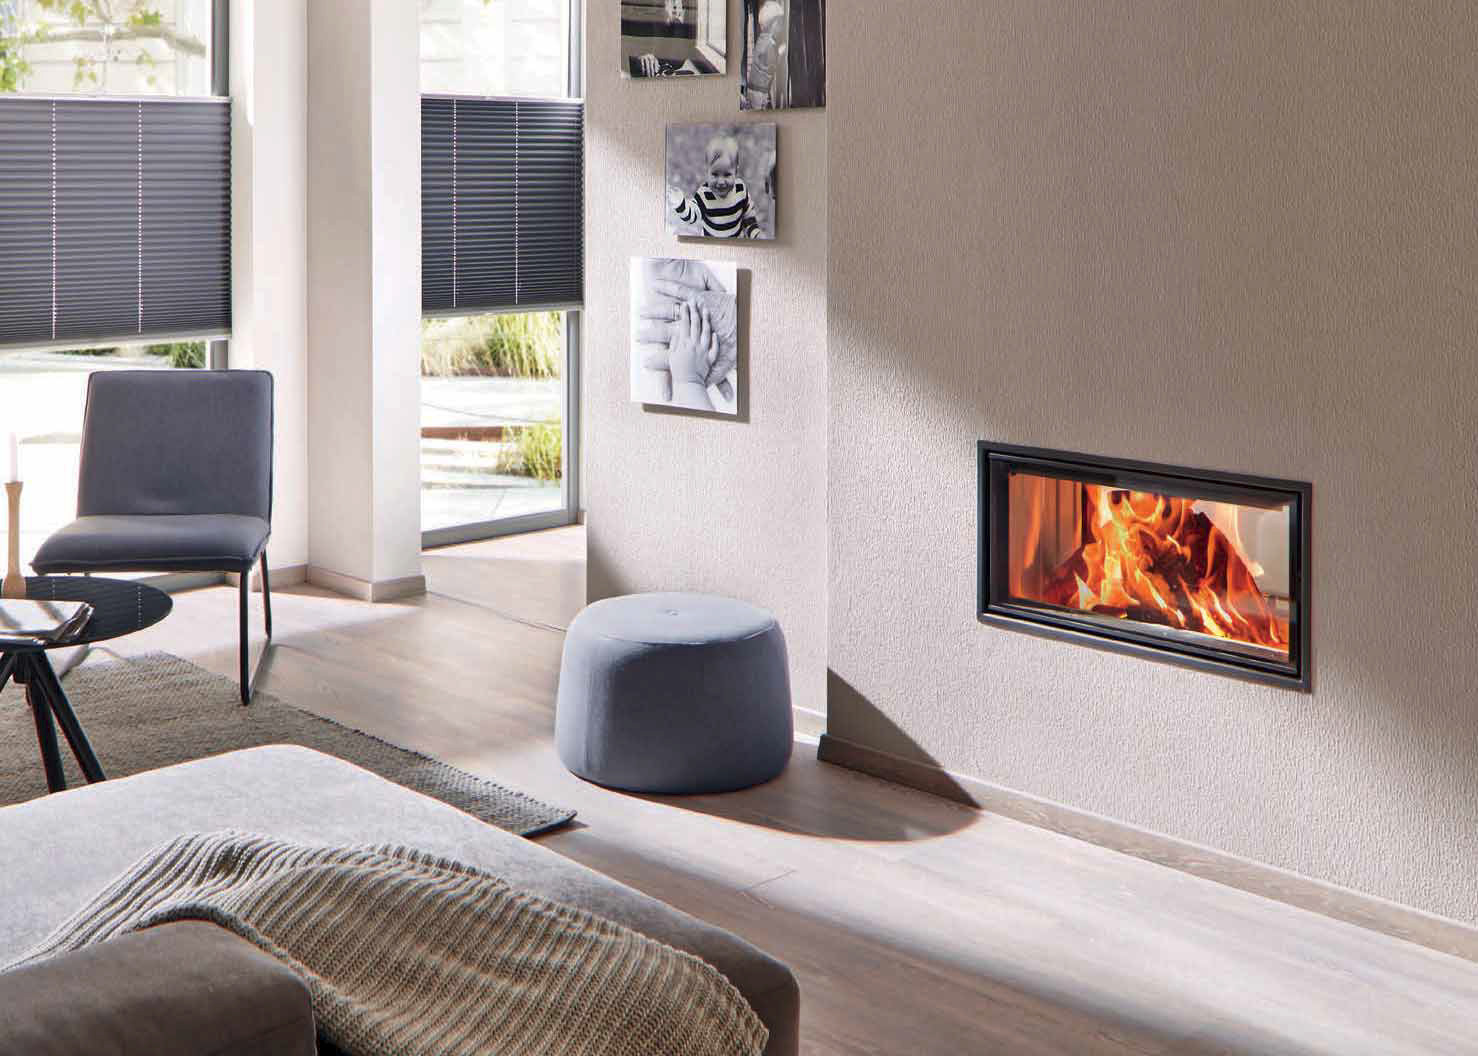 spartherm varia as fdh 2 flames fireplaces banbridge belfast northern ireland. Black Bedroom Furniture Sets. Home Design Ideas